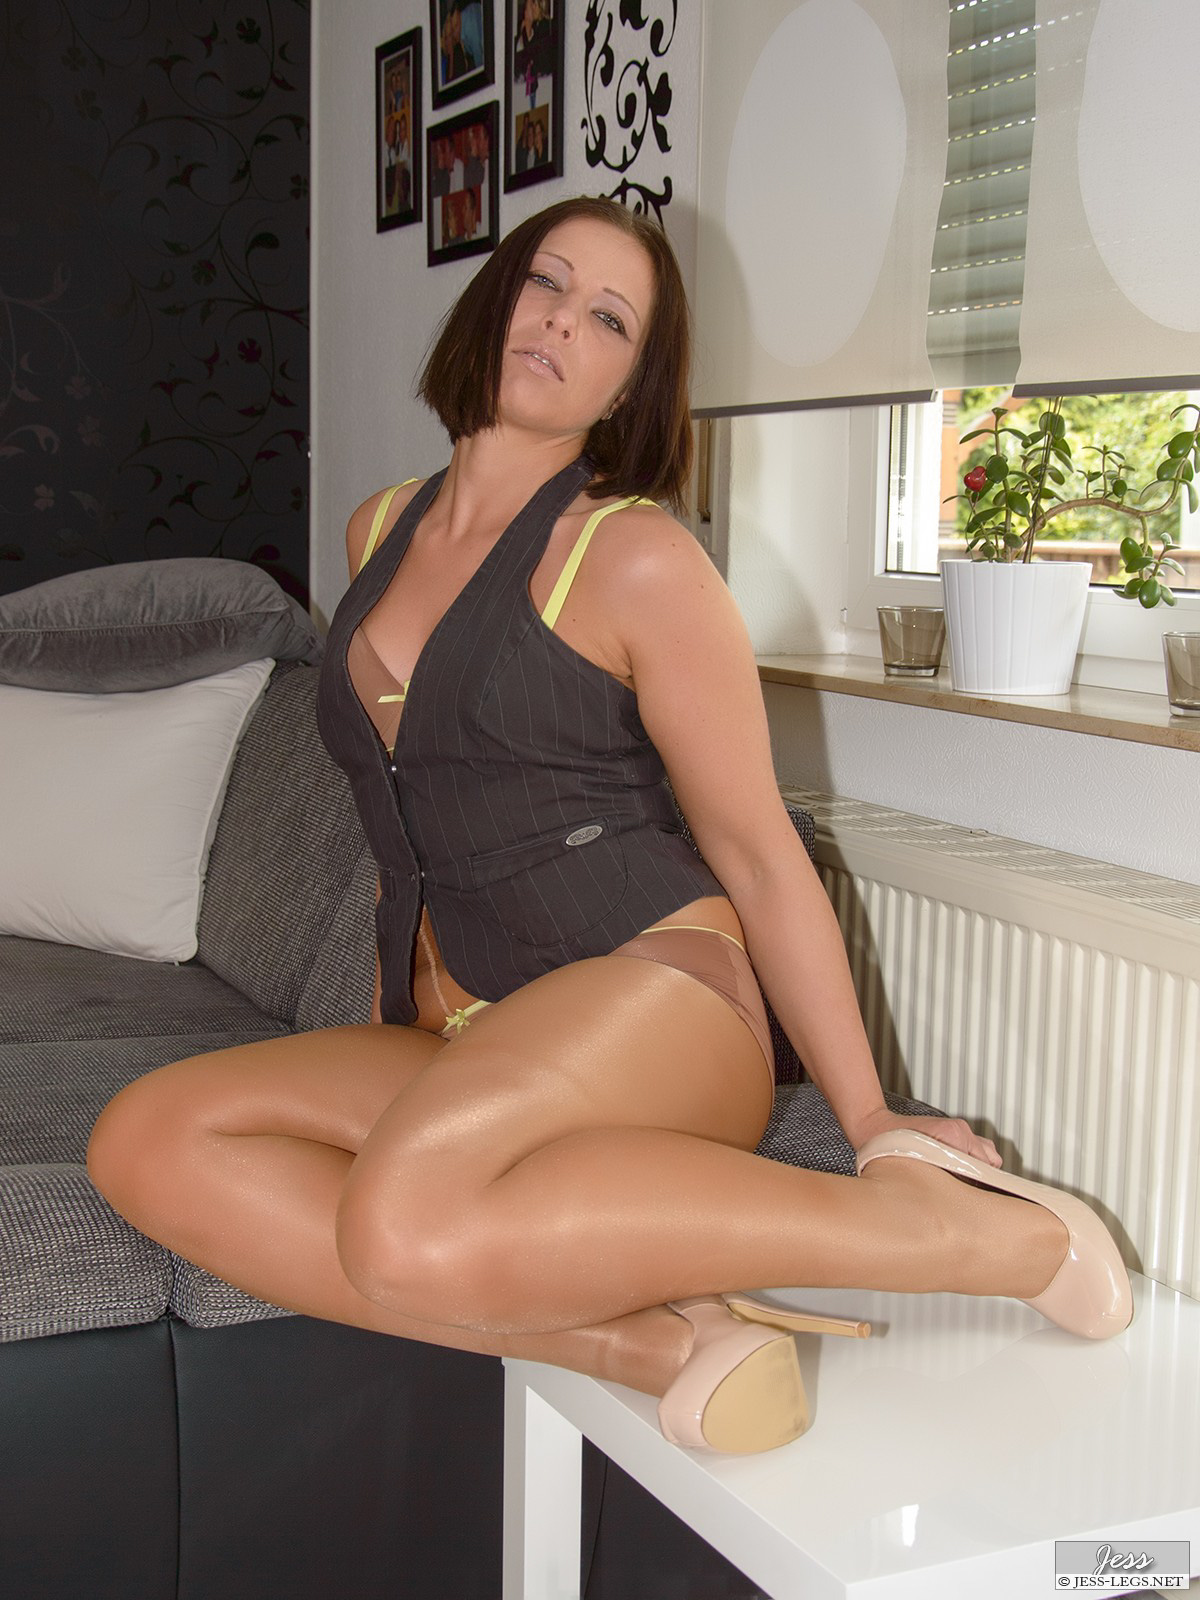 pantyhose stockings legs Jess